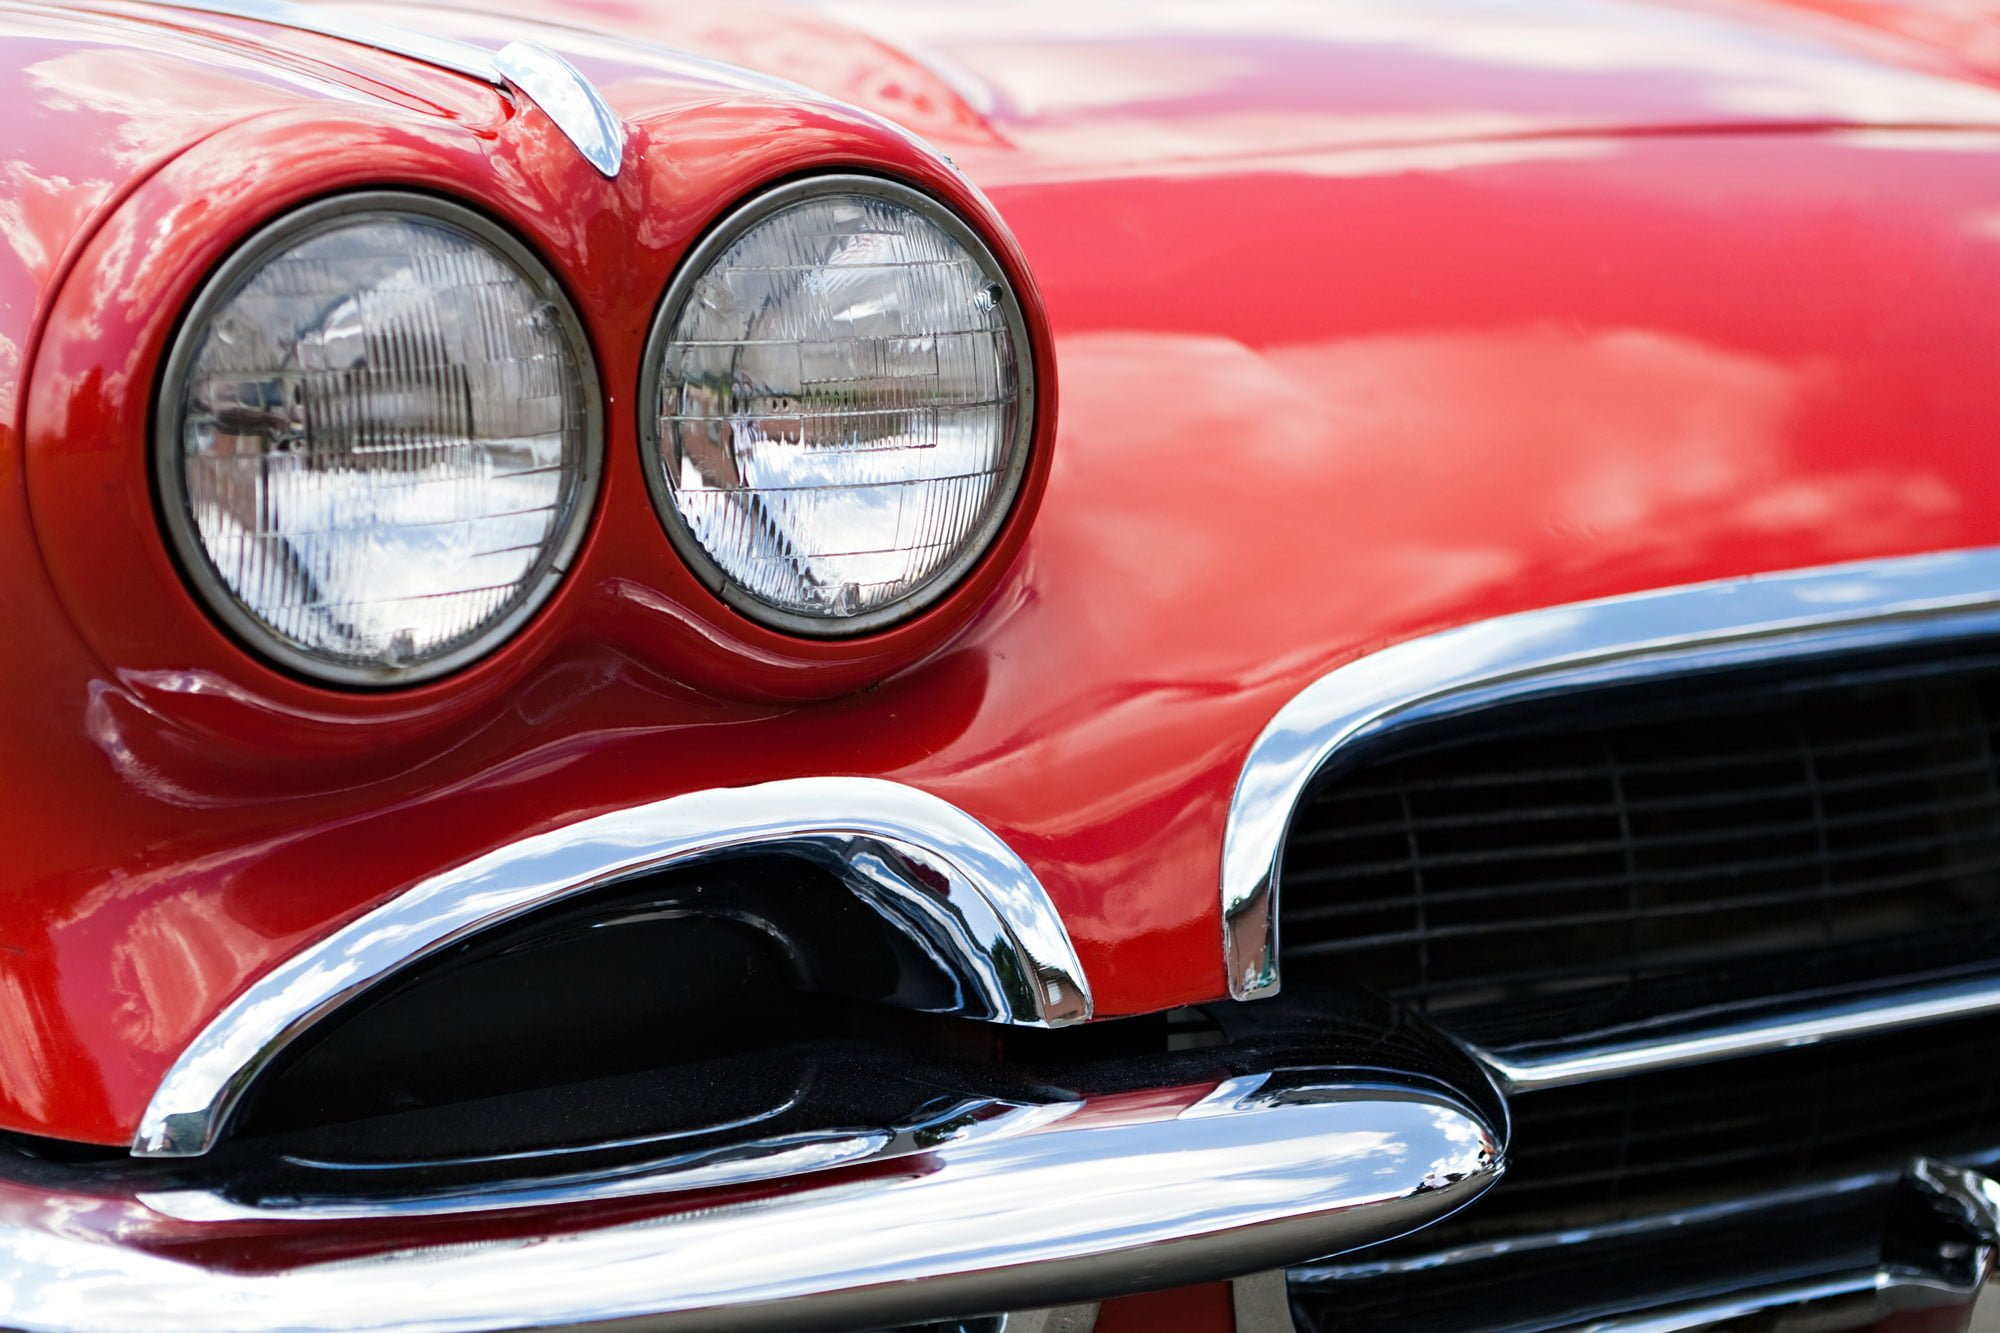 Closeup image of the front of a sparkling clean classic red car